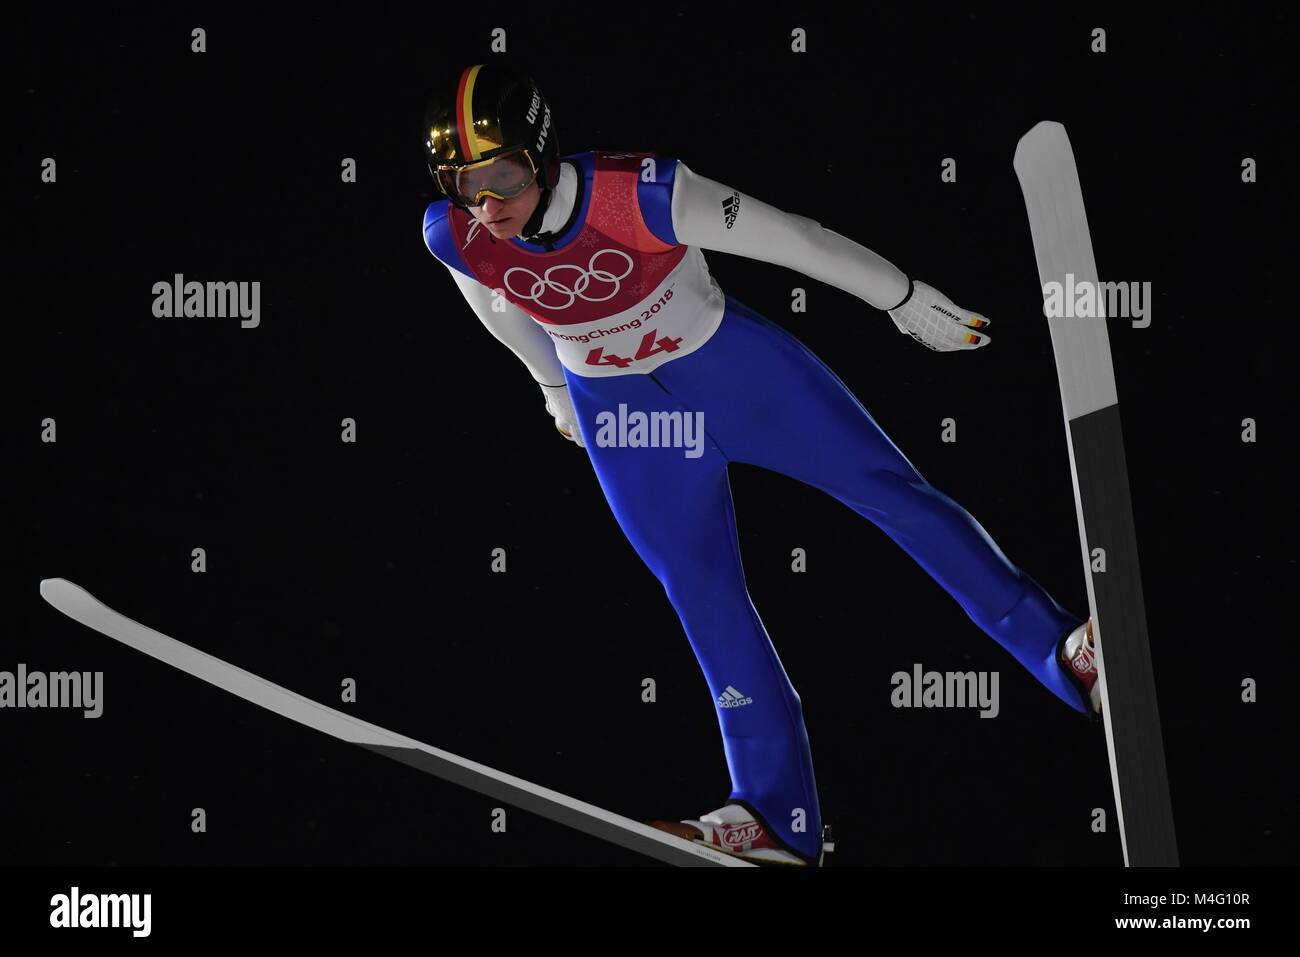 Pyeongchang, South Korea. 16th Feb, 2018. Karl Geiger from Germany during ski jumping training in the Alpensia Ski - Stock Image